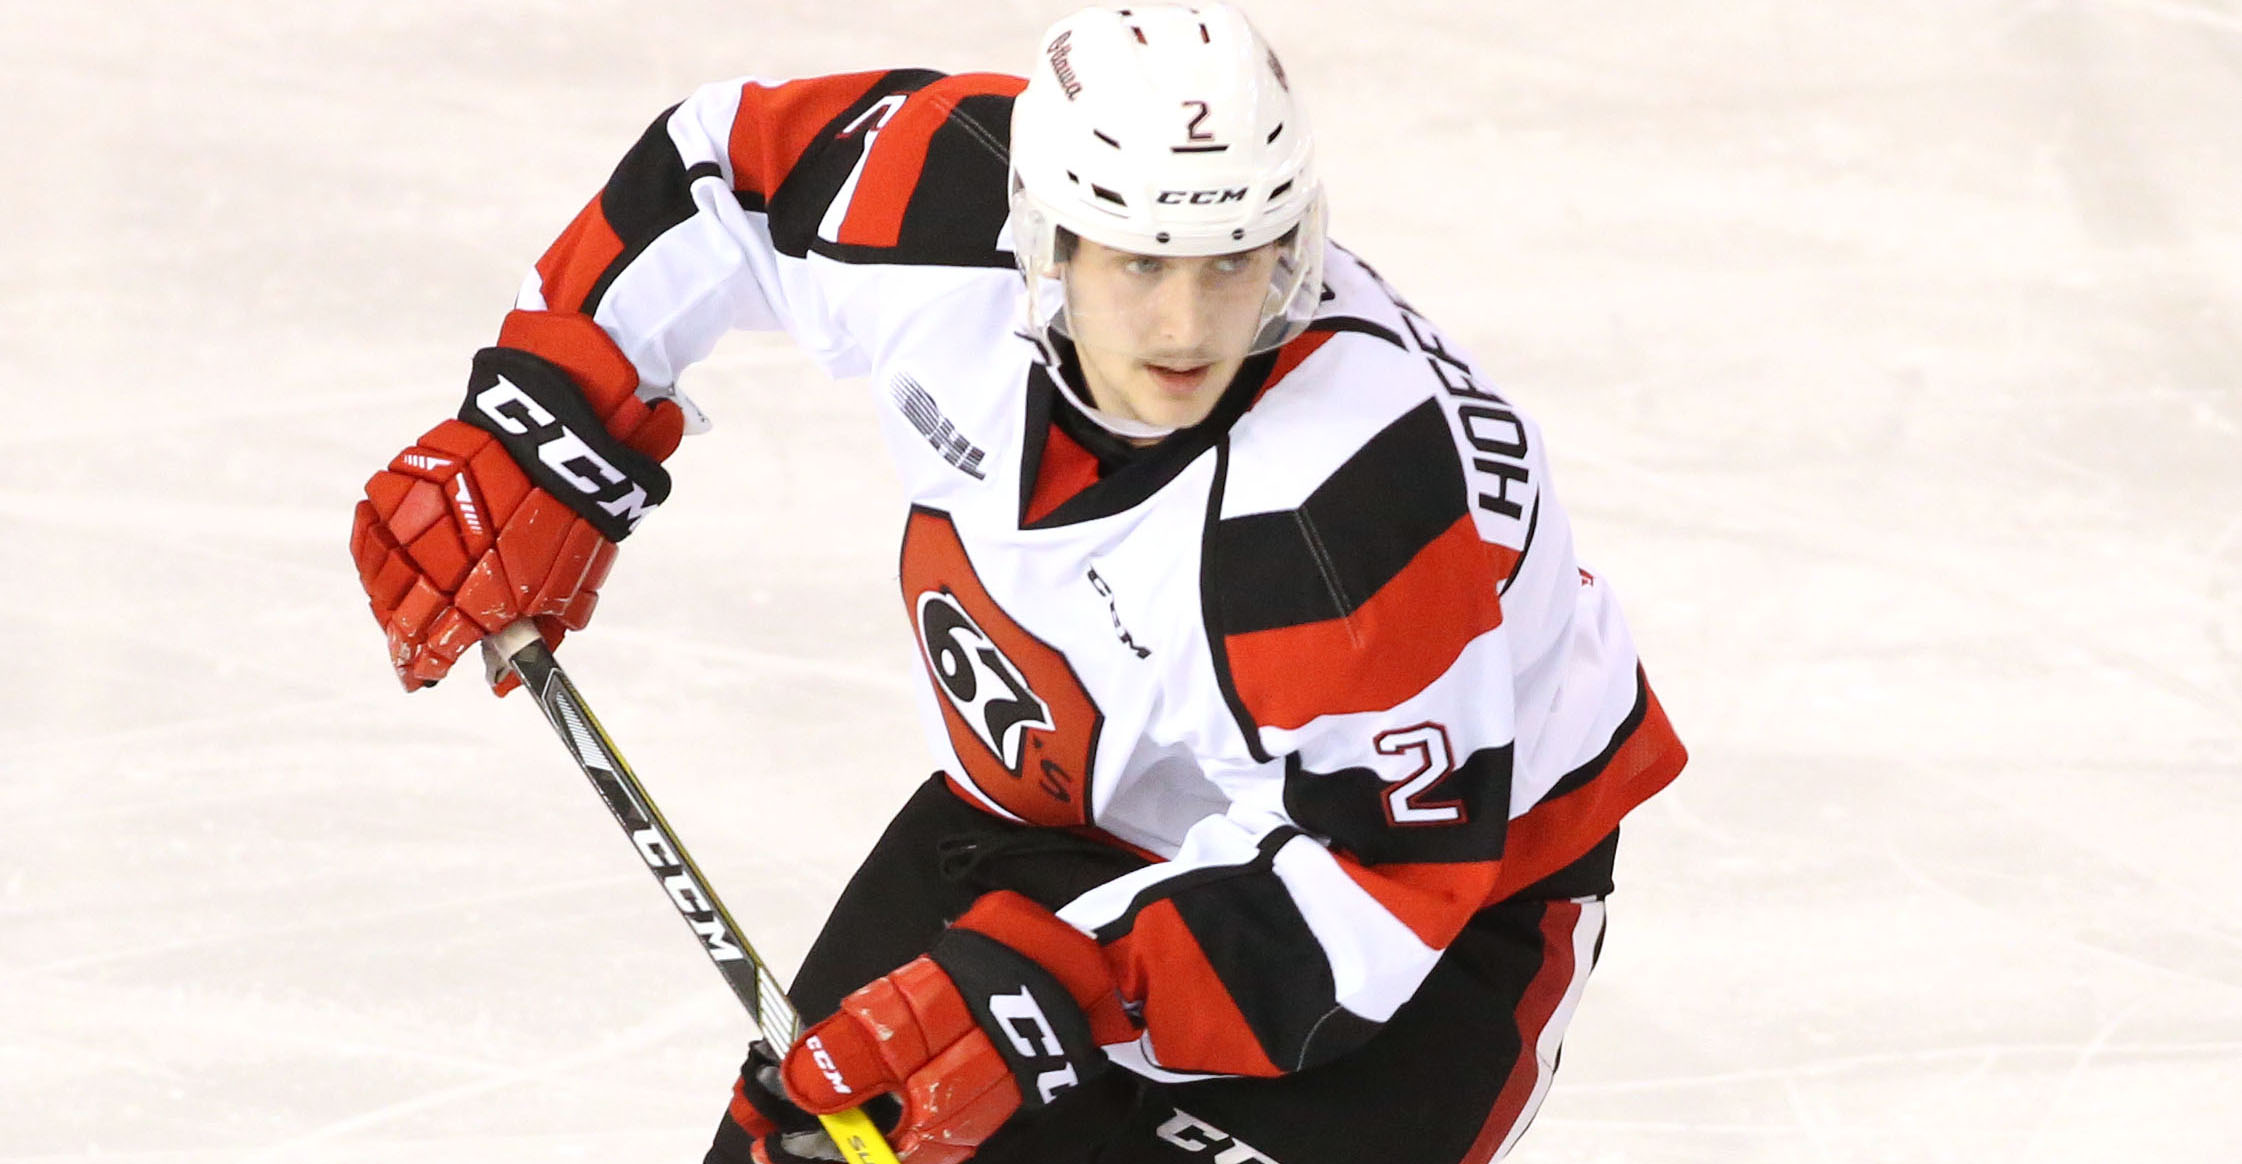 noel 2018 ottawa Defenseman Noel Hoefenmayer with the Ottawa 67's   April 13, 2018  noel 2018 ottawa